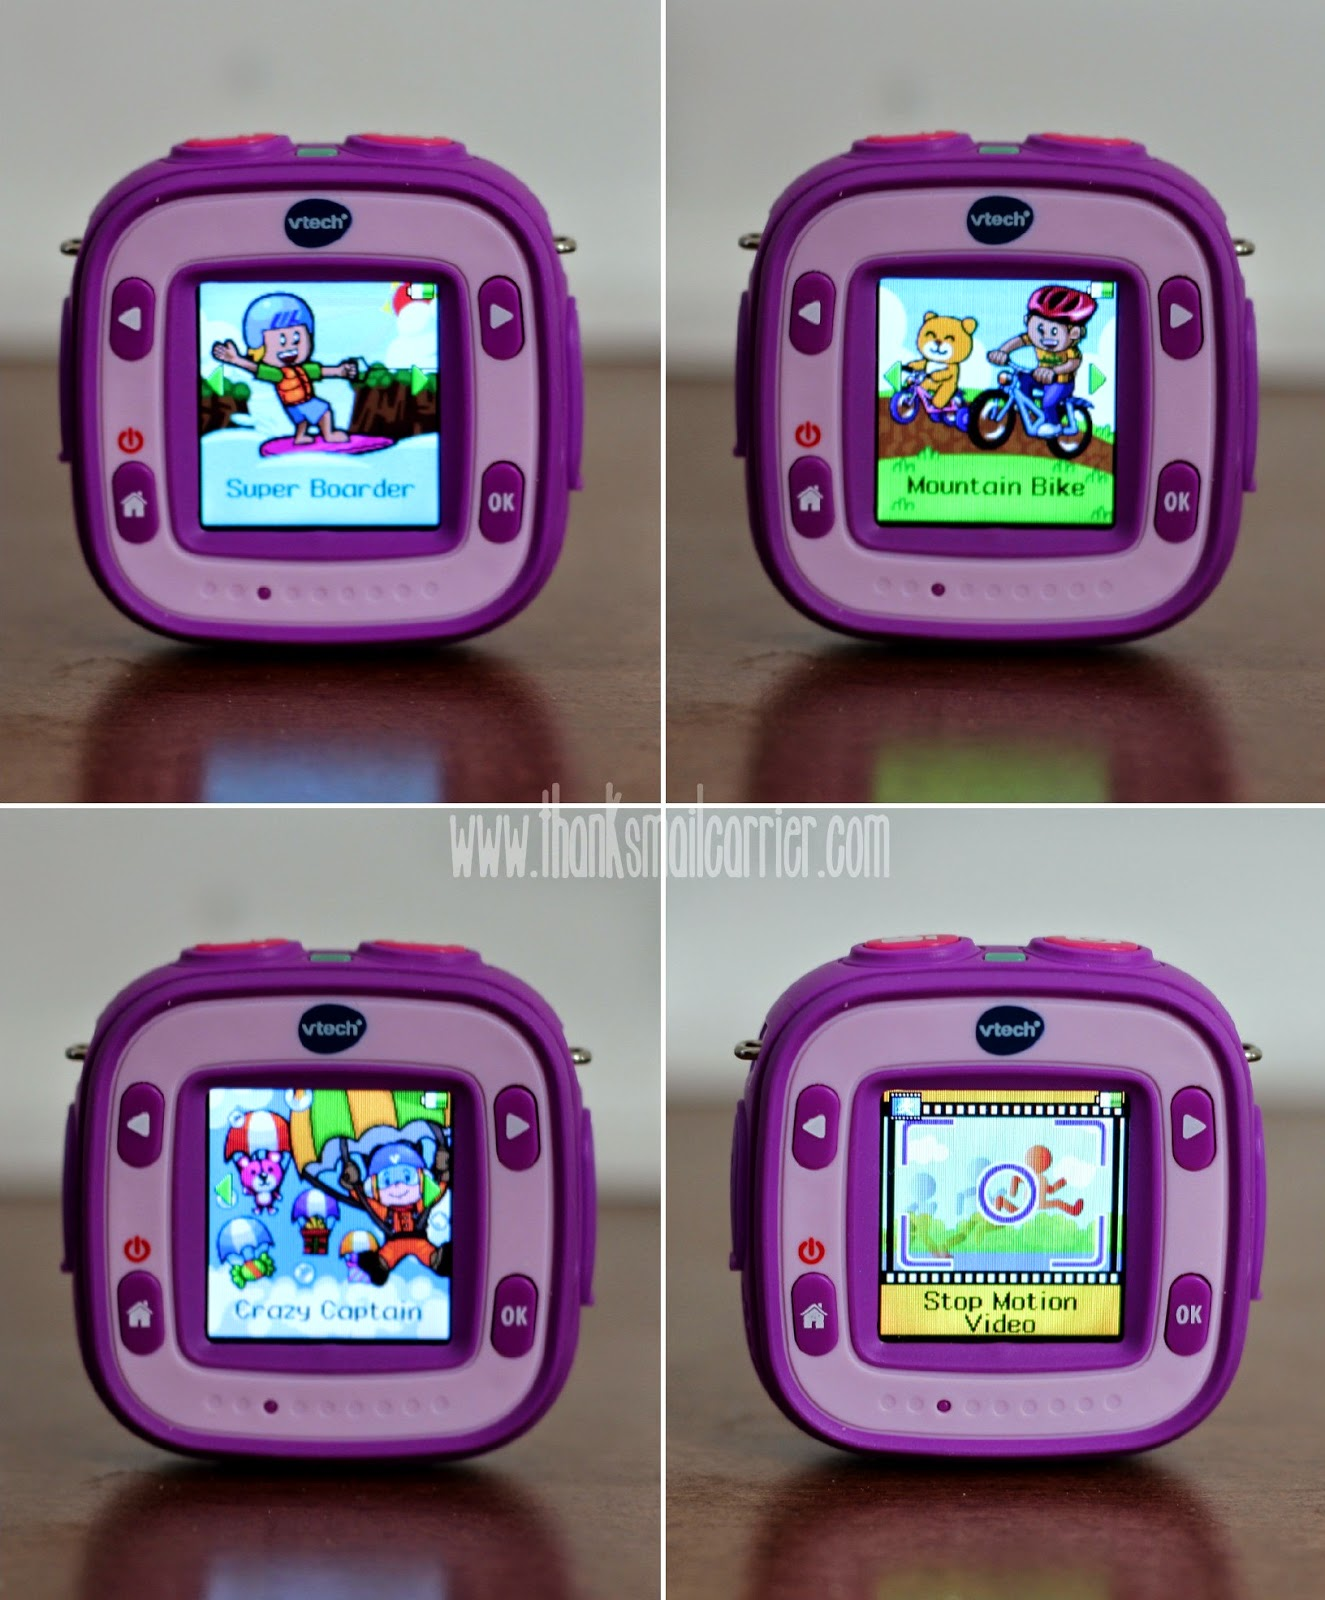 Kidizoom Action Cam games